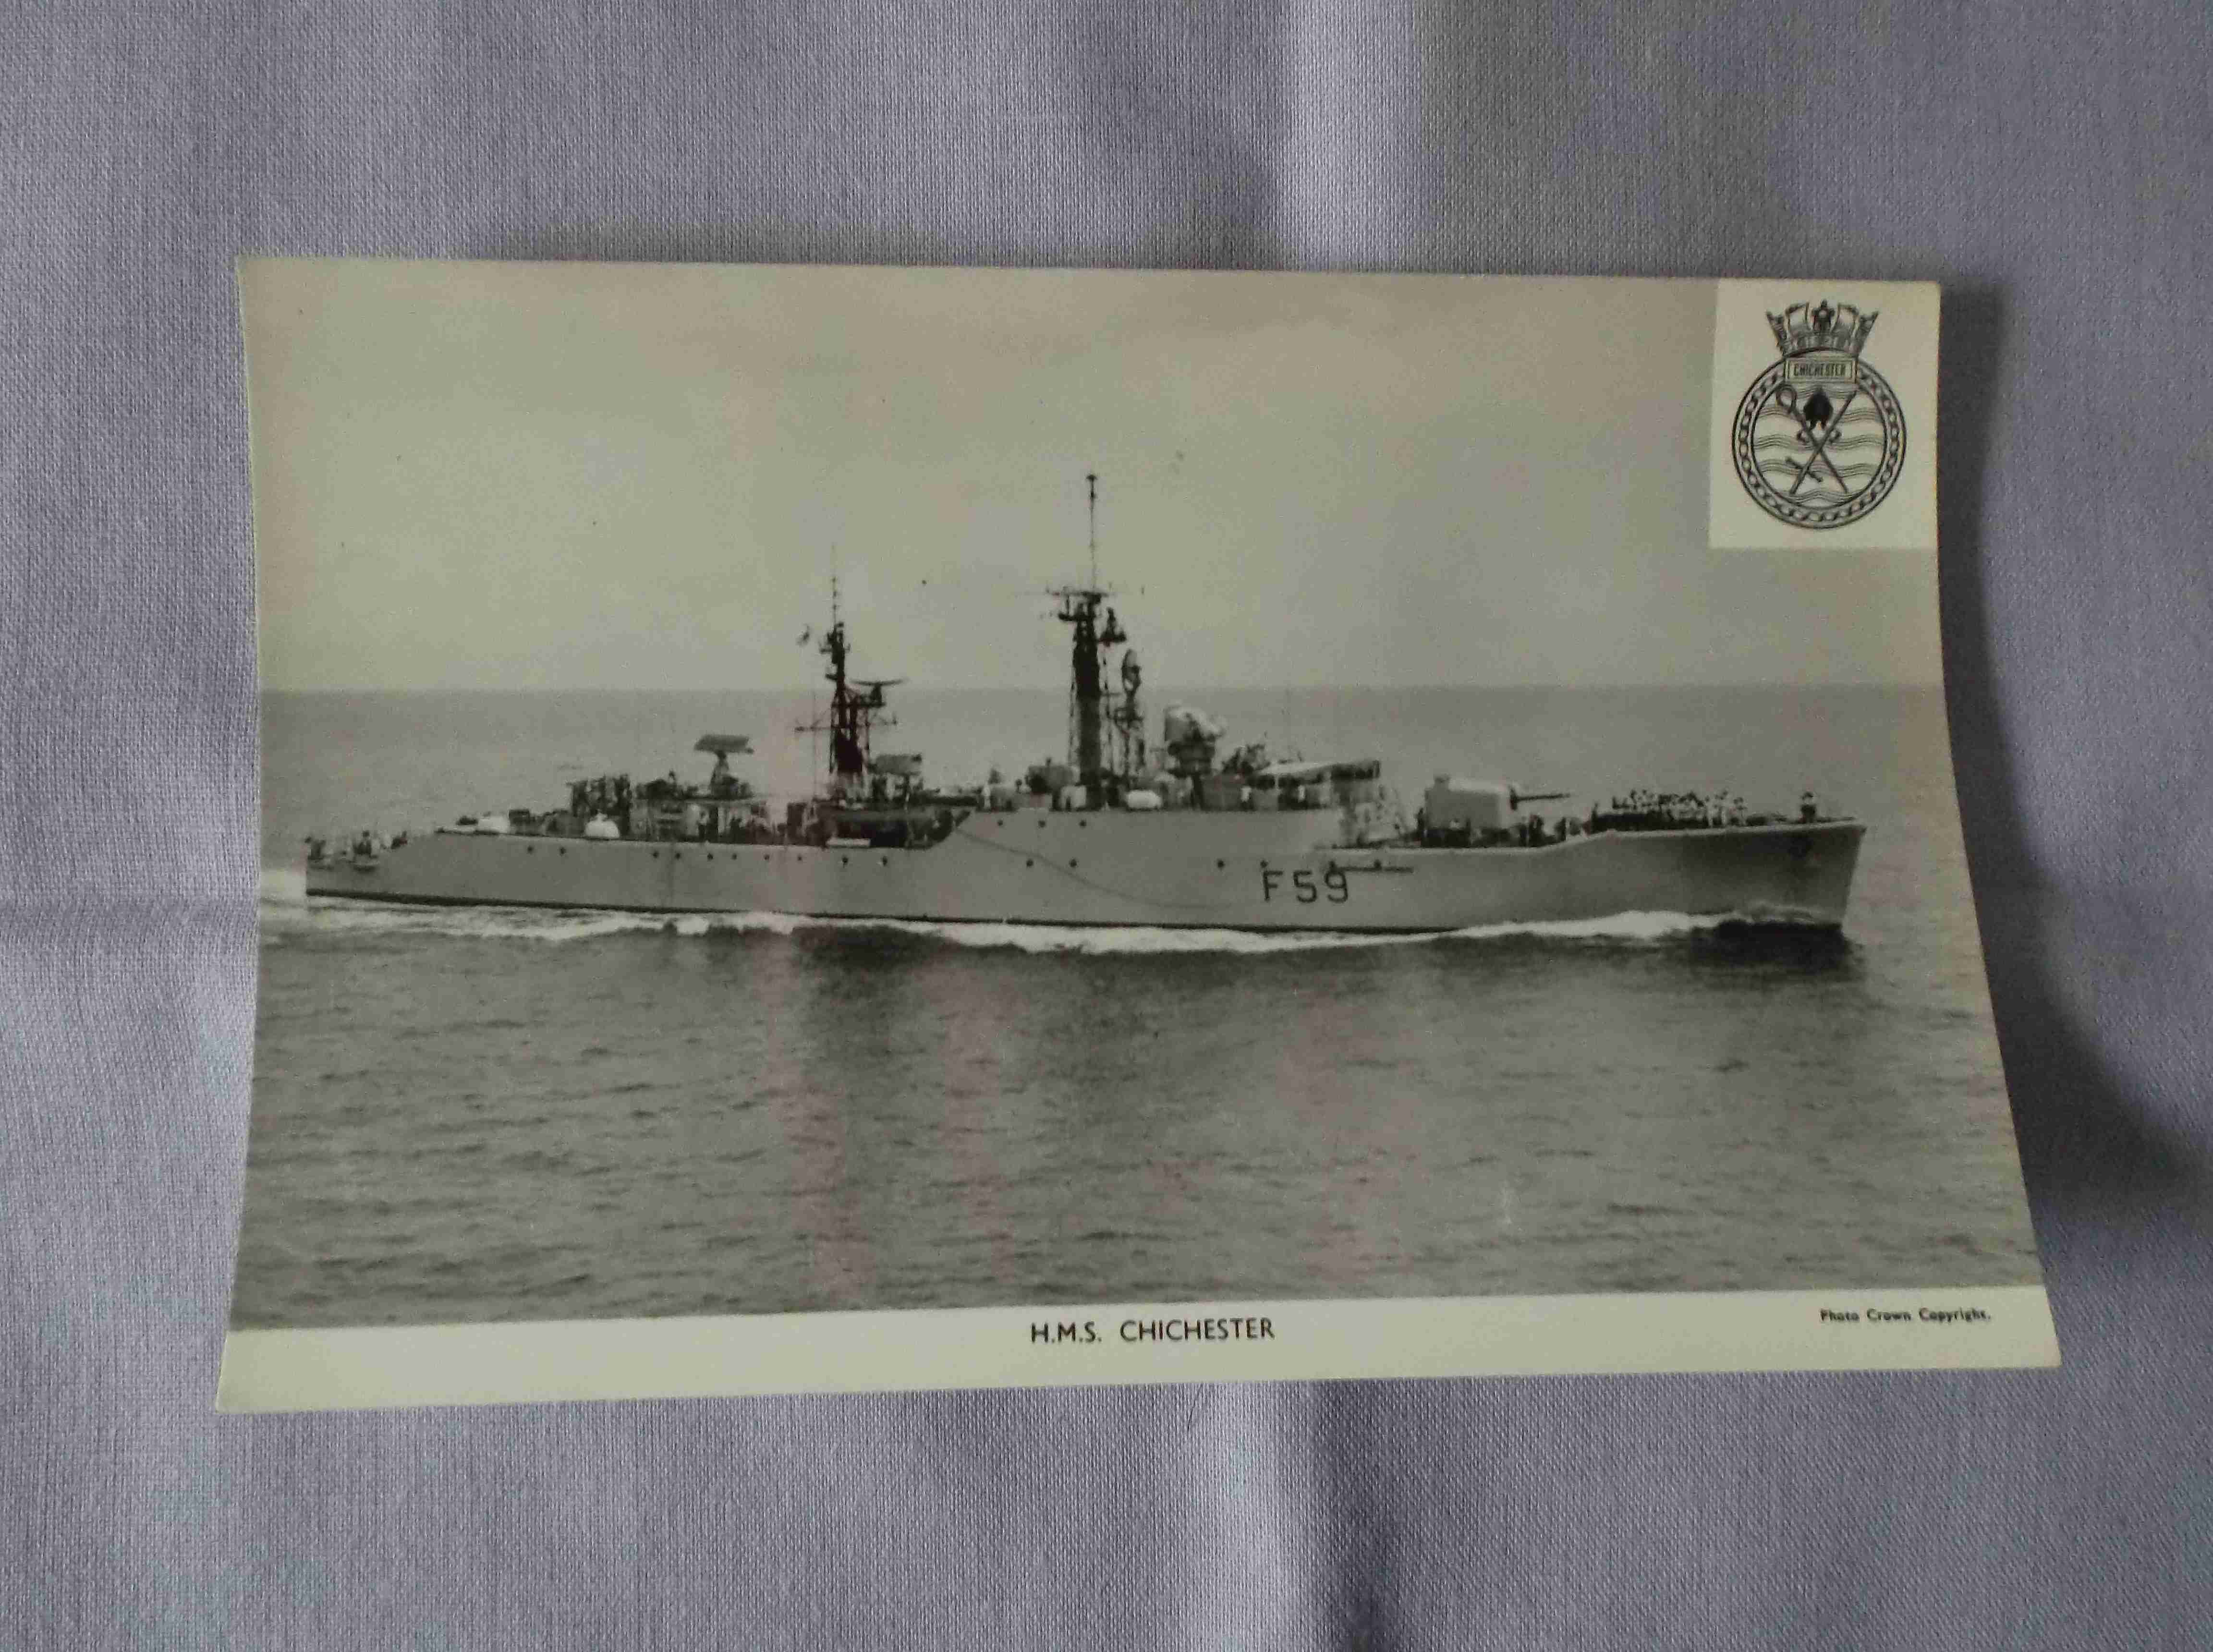 POSTCARD SIZE PHOTOGRAPH OF THE ROYAL NAVAL VESSEL HMS CHICHESTER